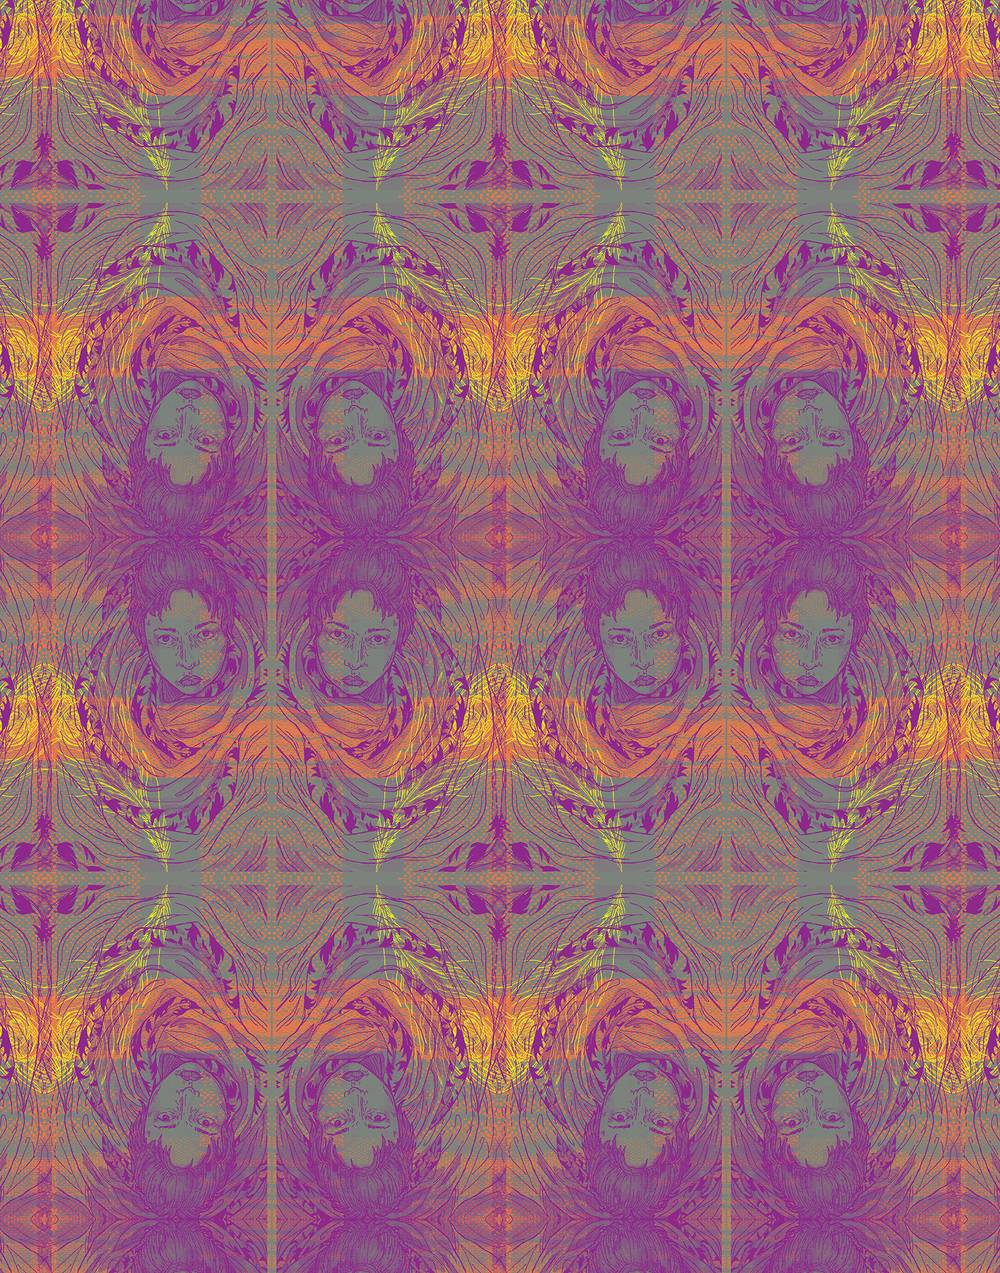 portrait pattern_color1.jpg